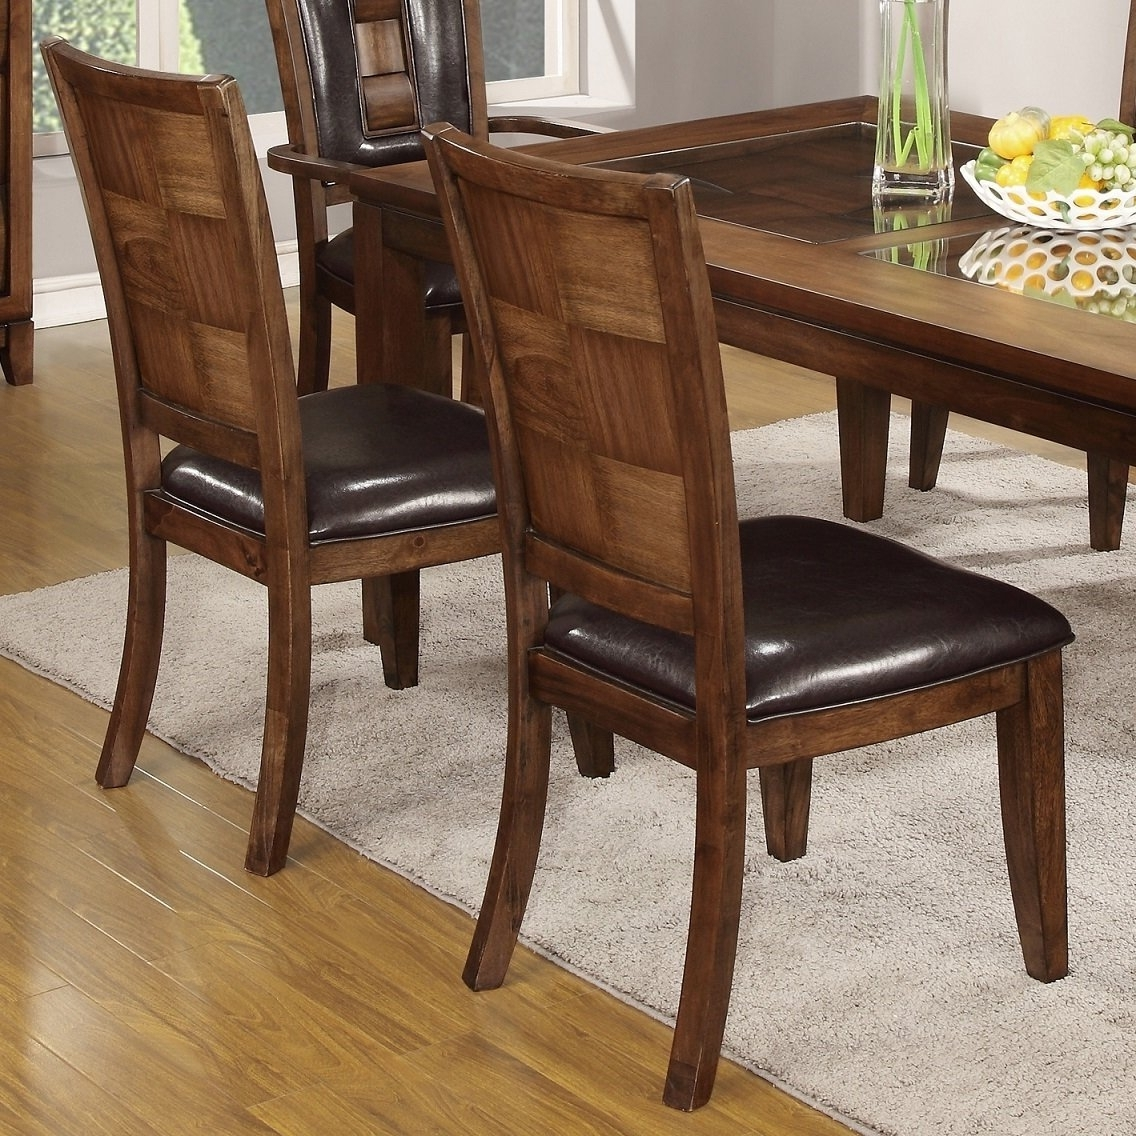 Favorite Shop Calais 7 Piece Parquet Finish Solid Wood Dining Table With 6 Regarding Parquet 7 Piece Dining Sets (View 5 of 25)